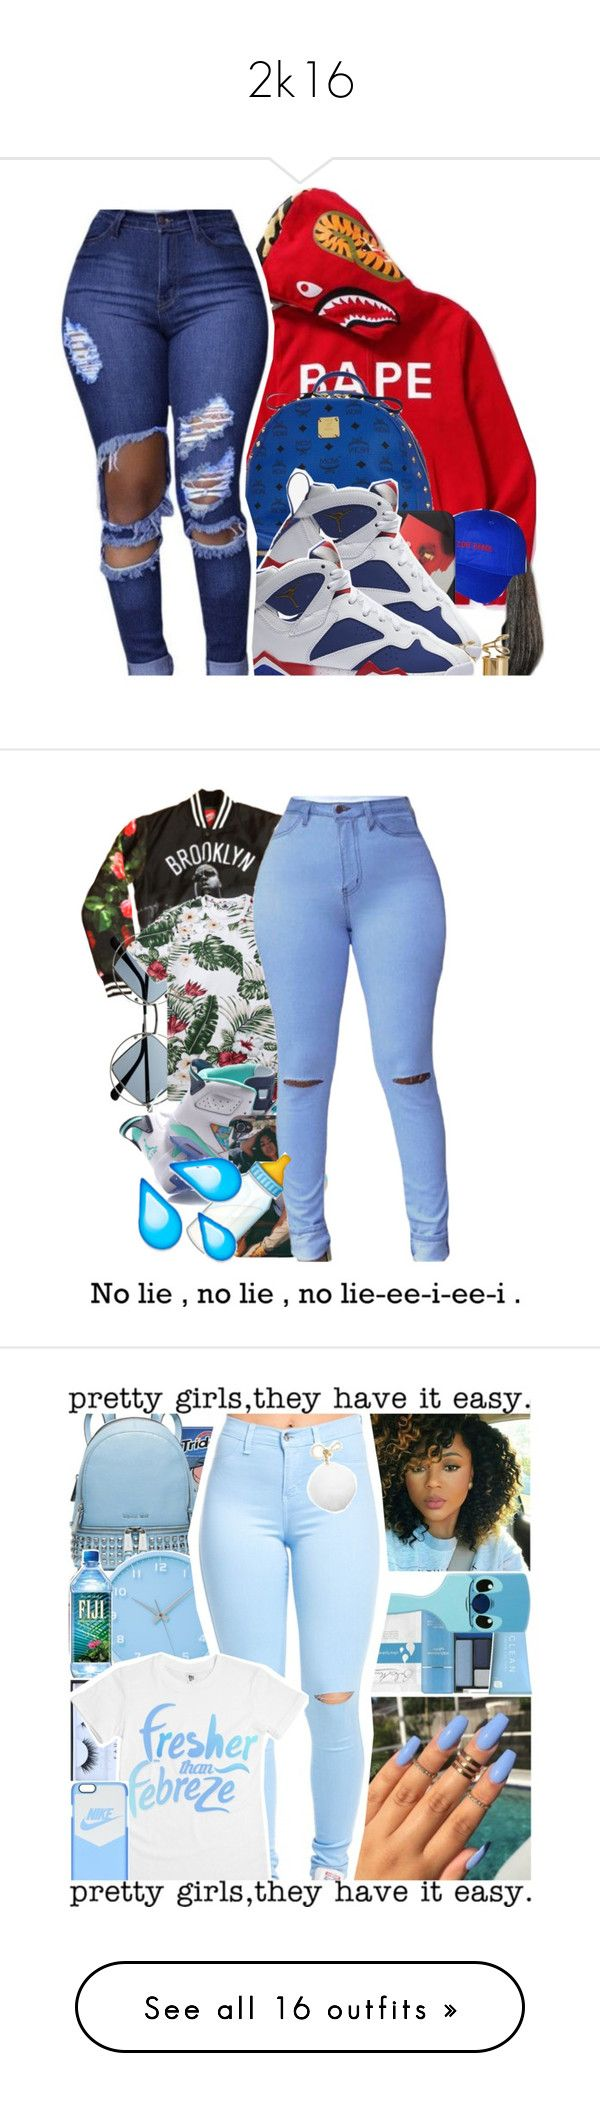 """2k16"" by missthang224 ❤ liked on Polyvore featuring MCM, NIKE, Balenciaga, Retrò, Penfield, Lemnos, Huda Beauty, Michael Kors, On The Byas and Pieces"